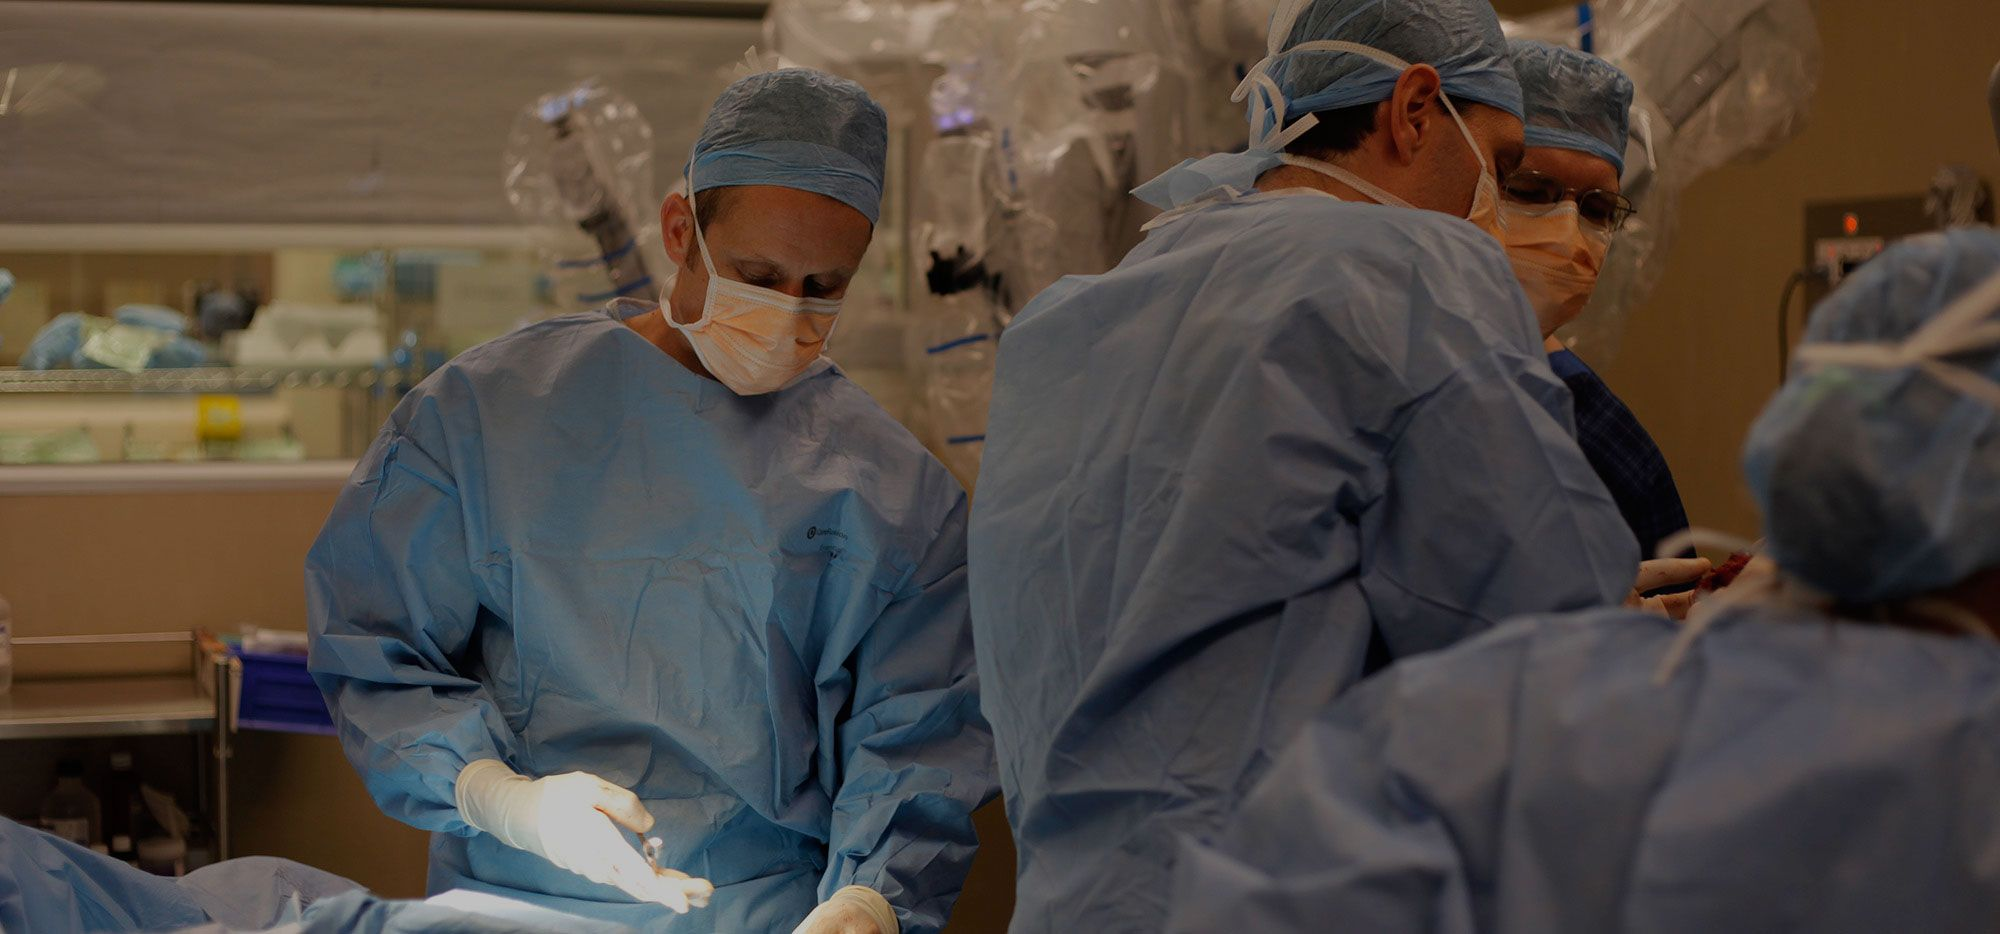 Robotic prostate surgery at The Prostate Clinic in Australia UroLift Enlarged Prostate Treatment Laser Prostate Surgery